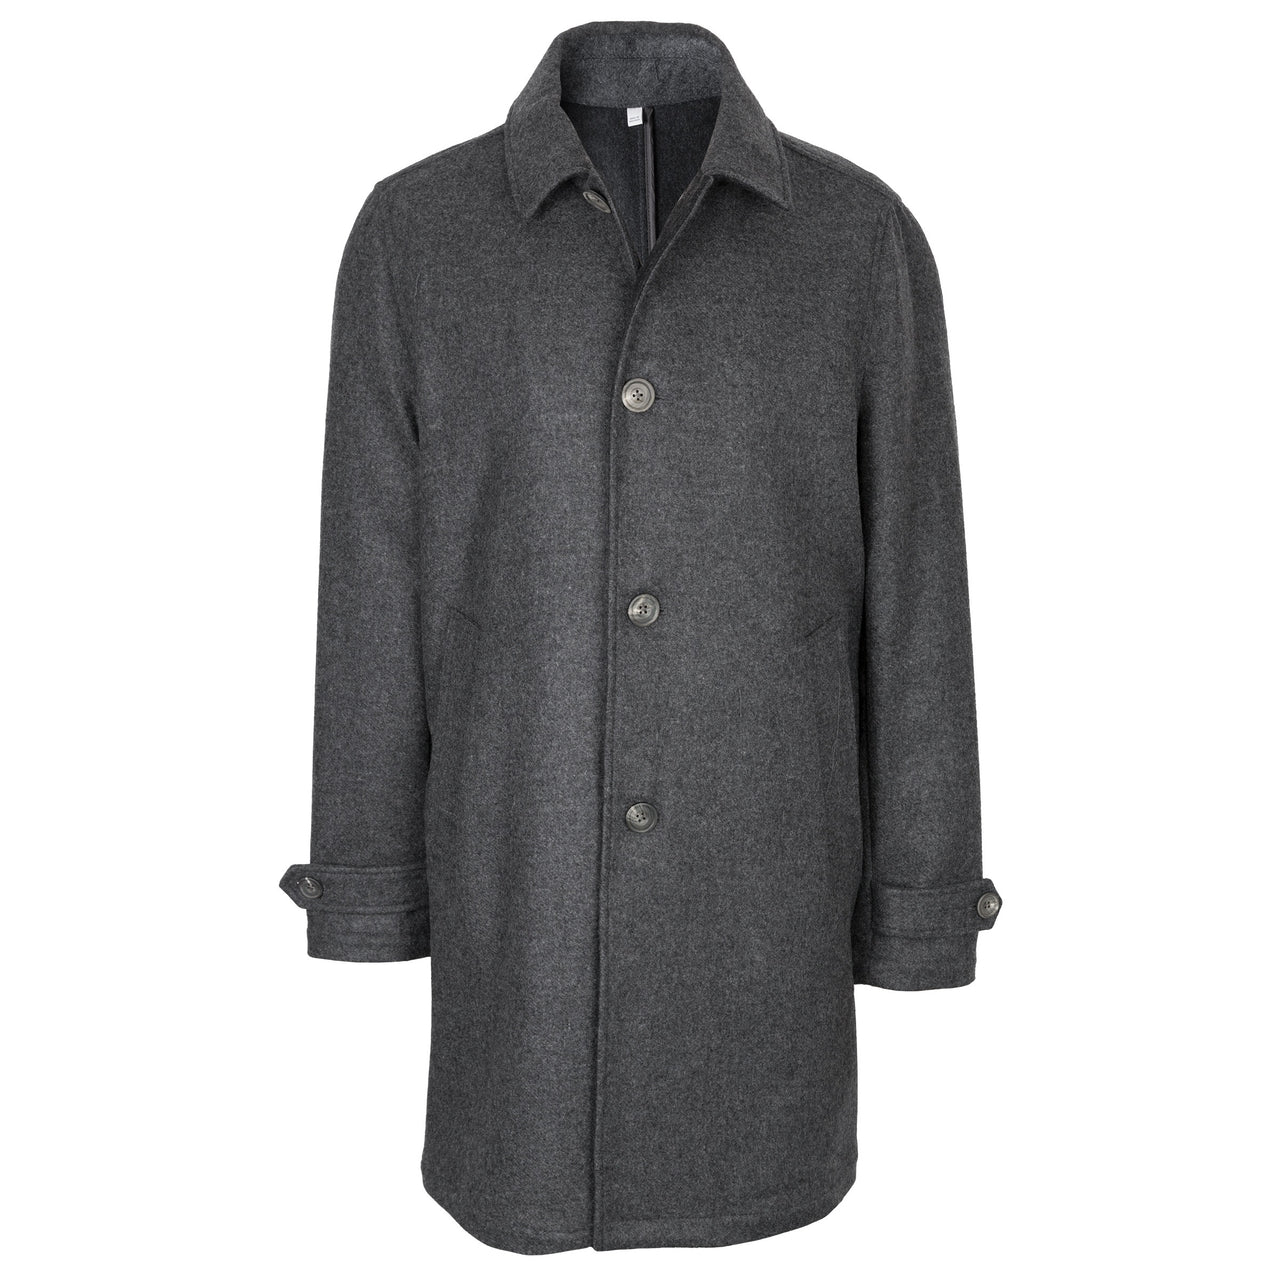 Hardy Amies Charcoal Grey Double Faced Wool & Cashmere Coat